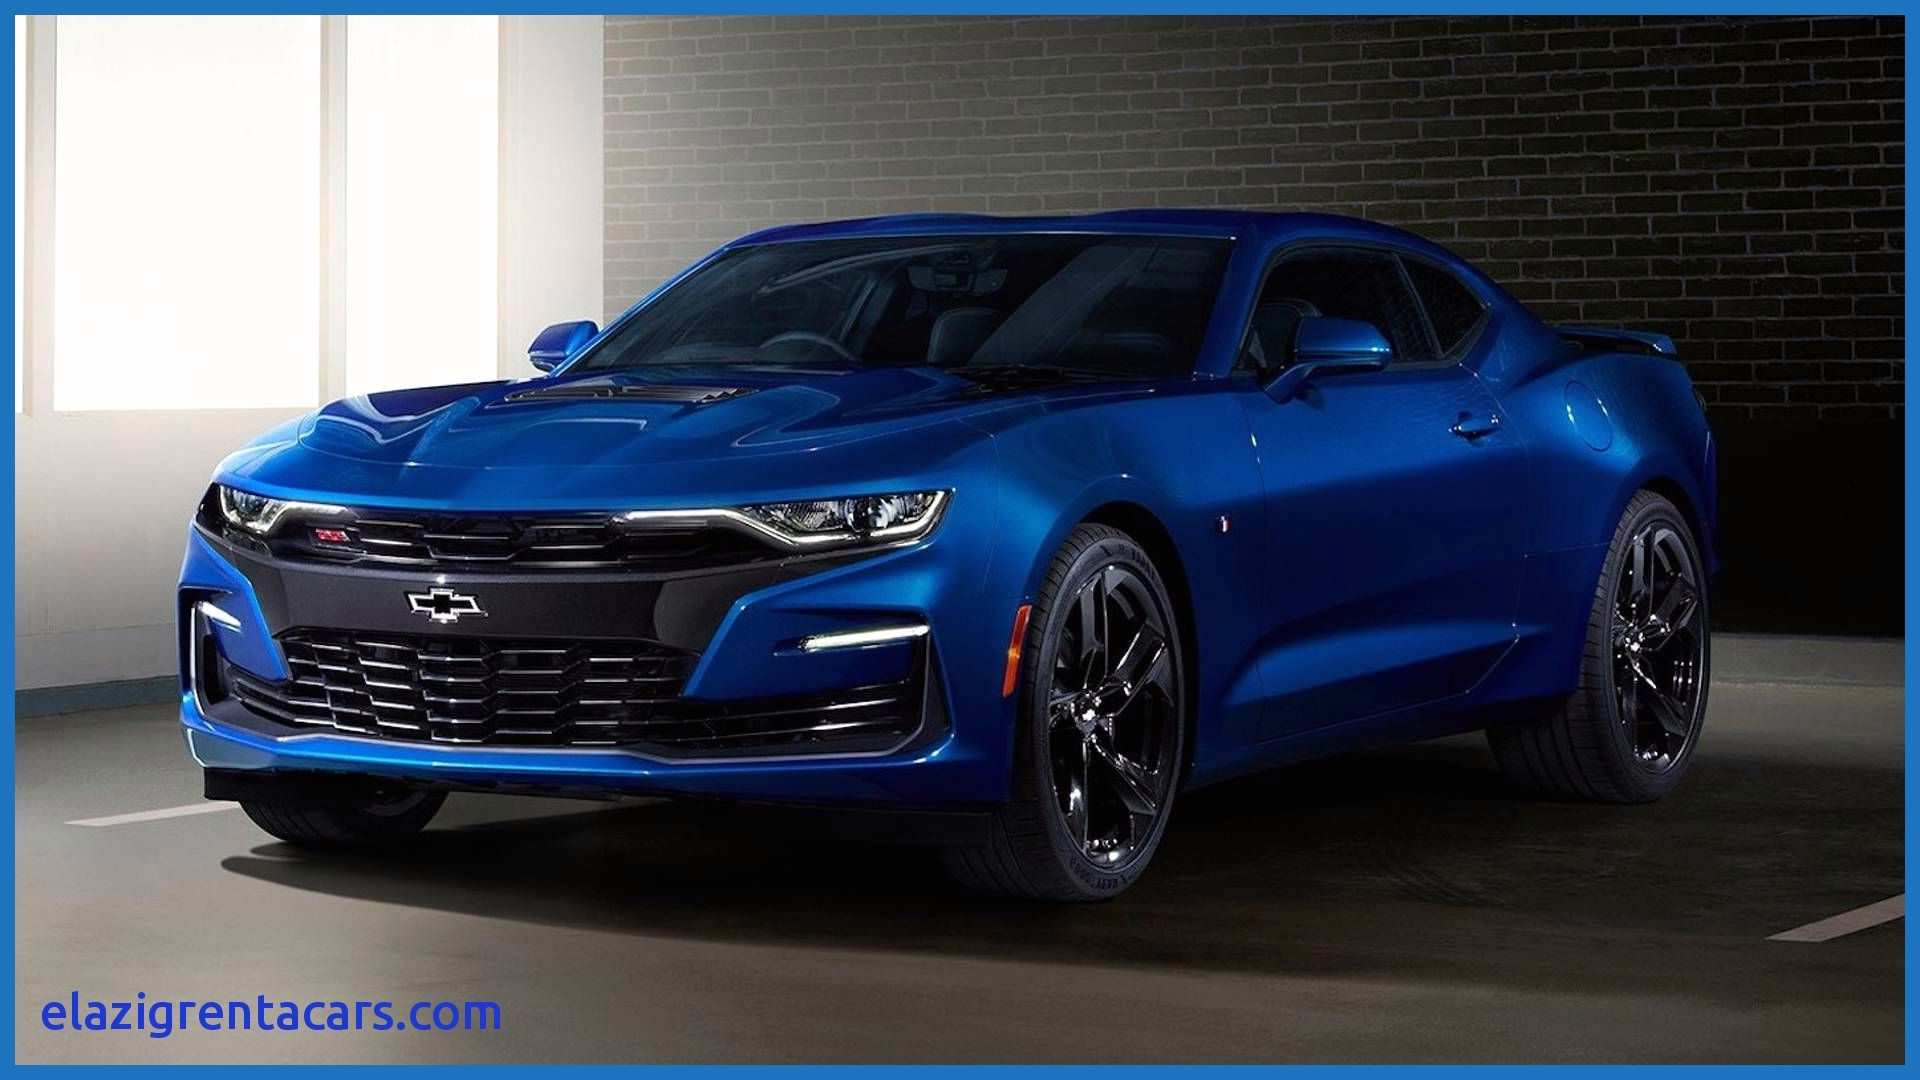 90 New 2019 Chevy Monte Carlo Release Date And Concept